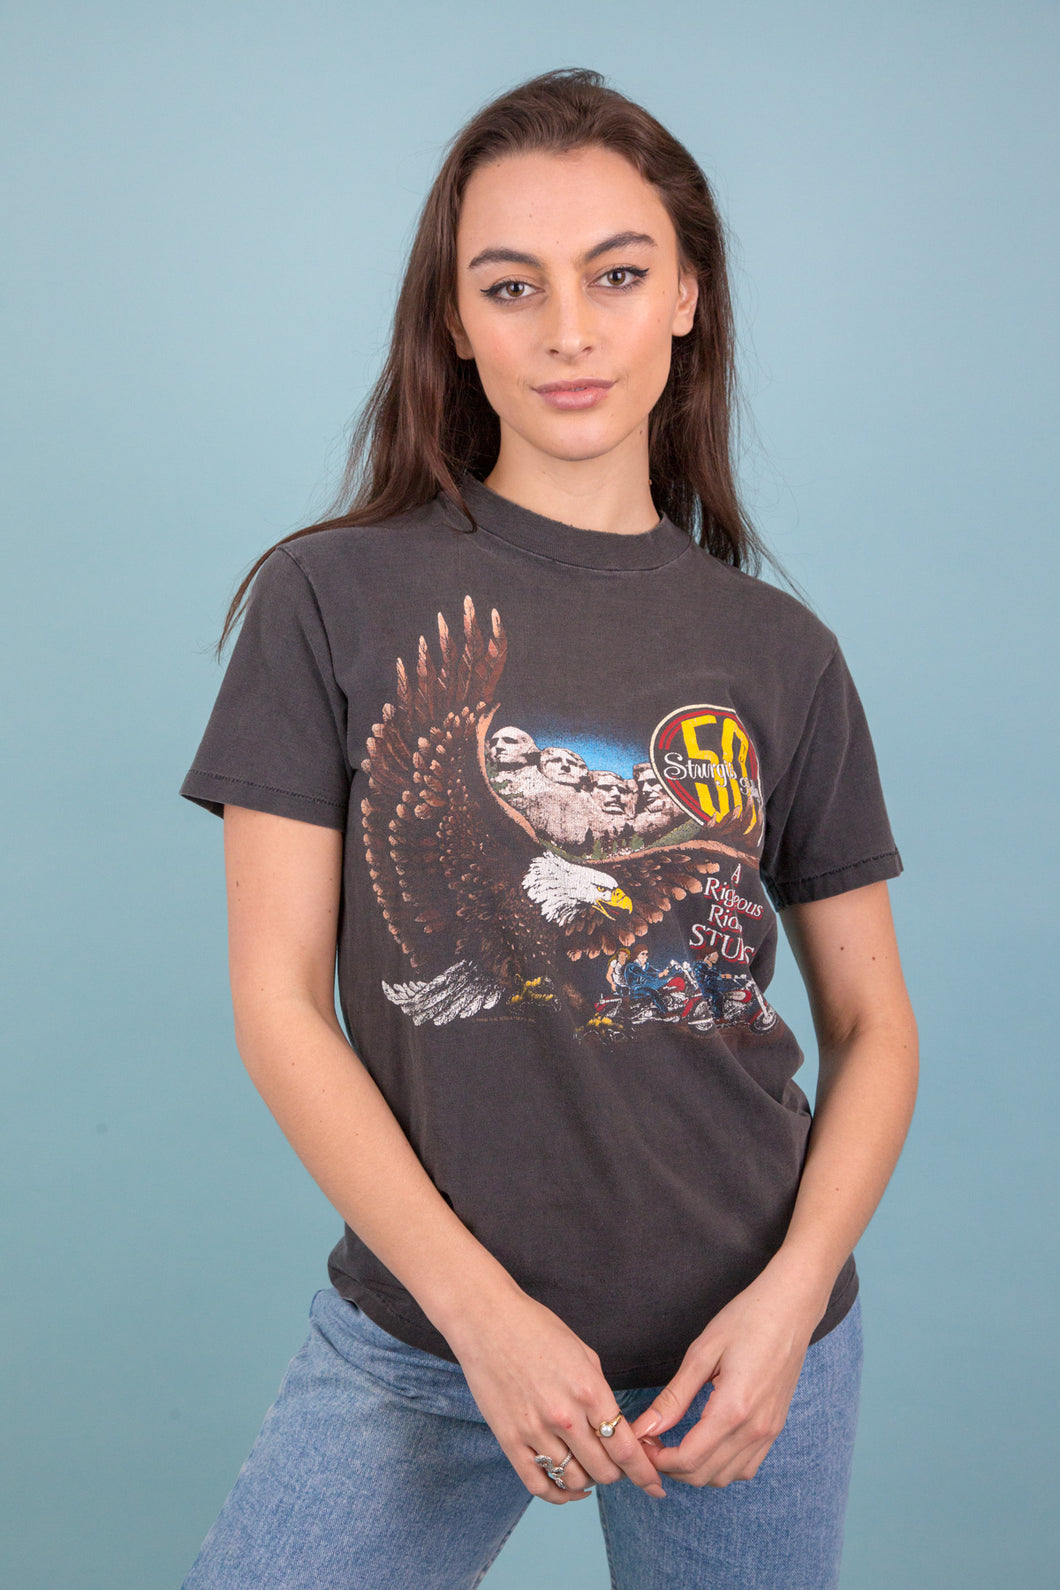 1988 Distressed Sturgis Harley Tee